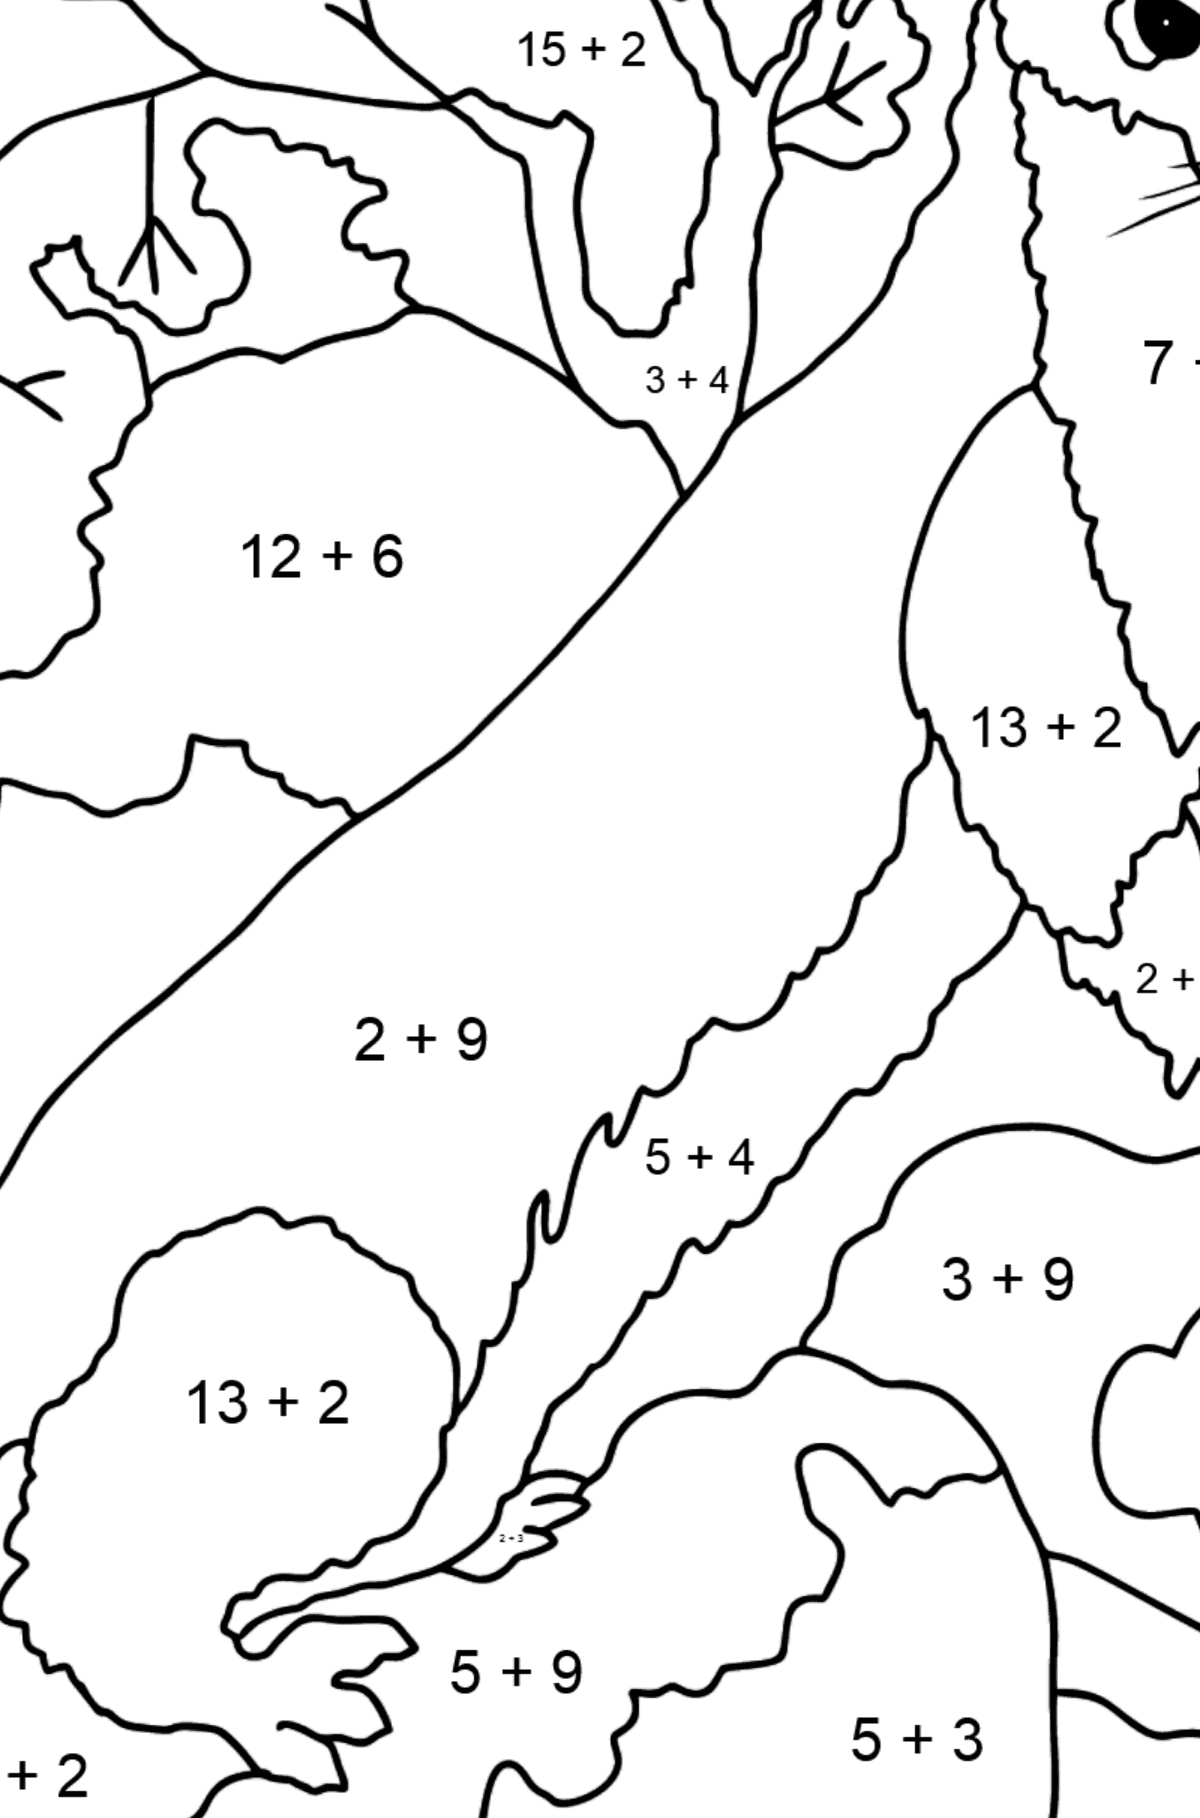 Coloring Page - An Ermine - A Sly Hunter - Math Coloring - Addition for Kids